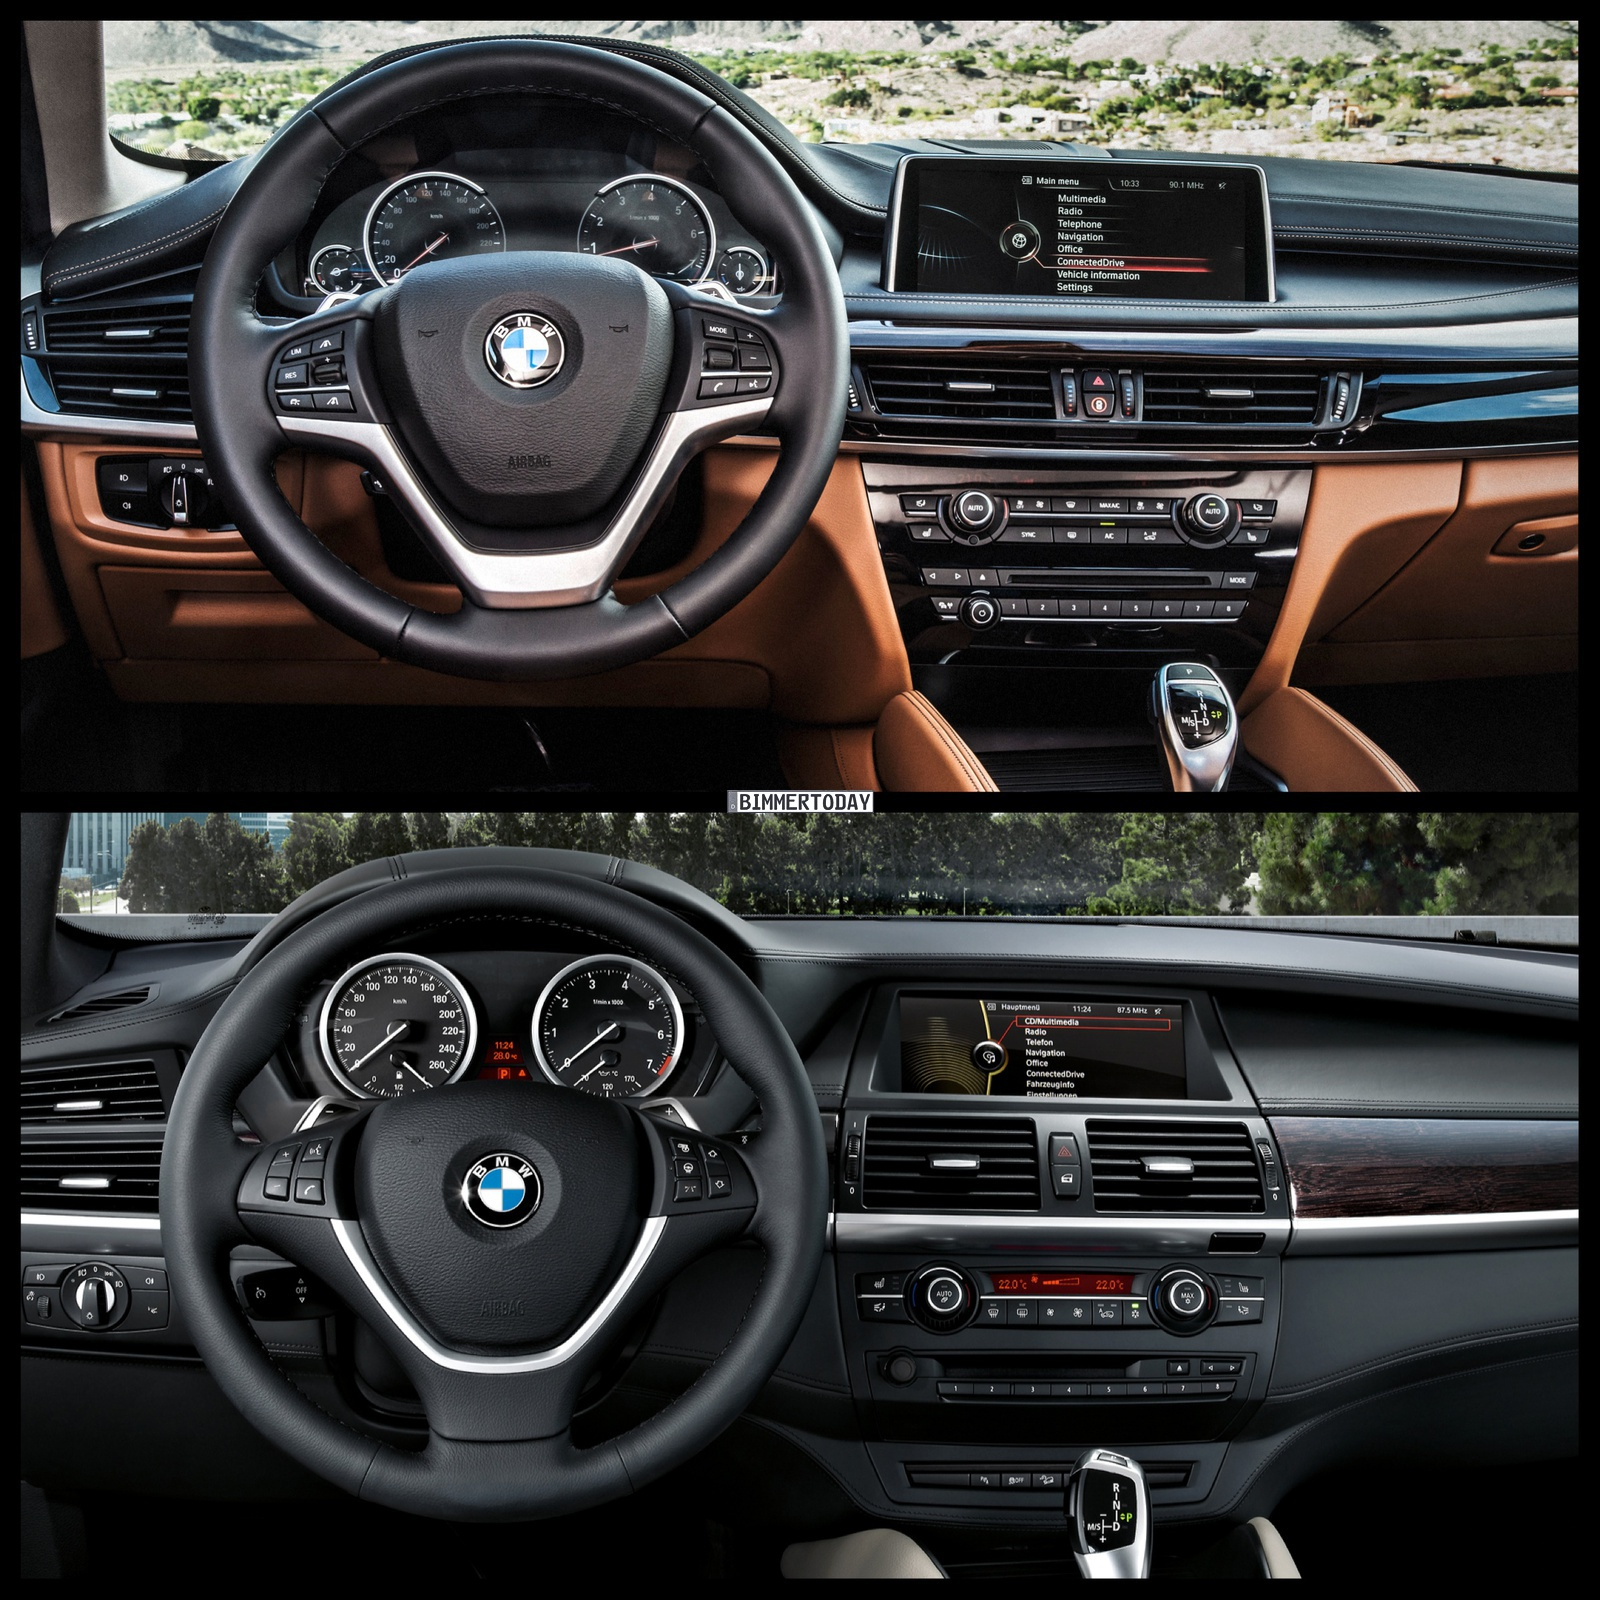 F16 Bmw X6 Vs E71 Bmw X6 Photo Comparison